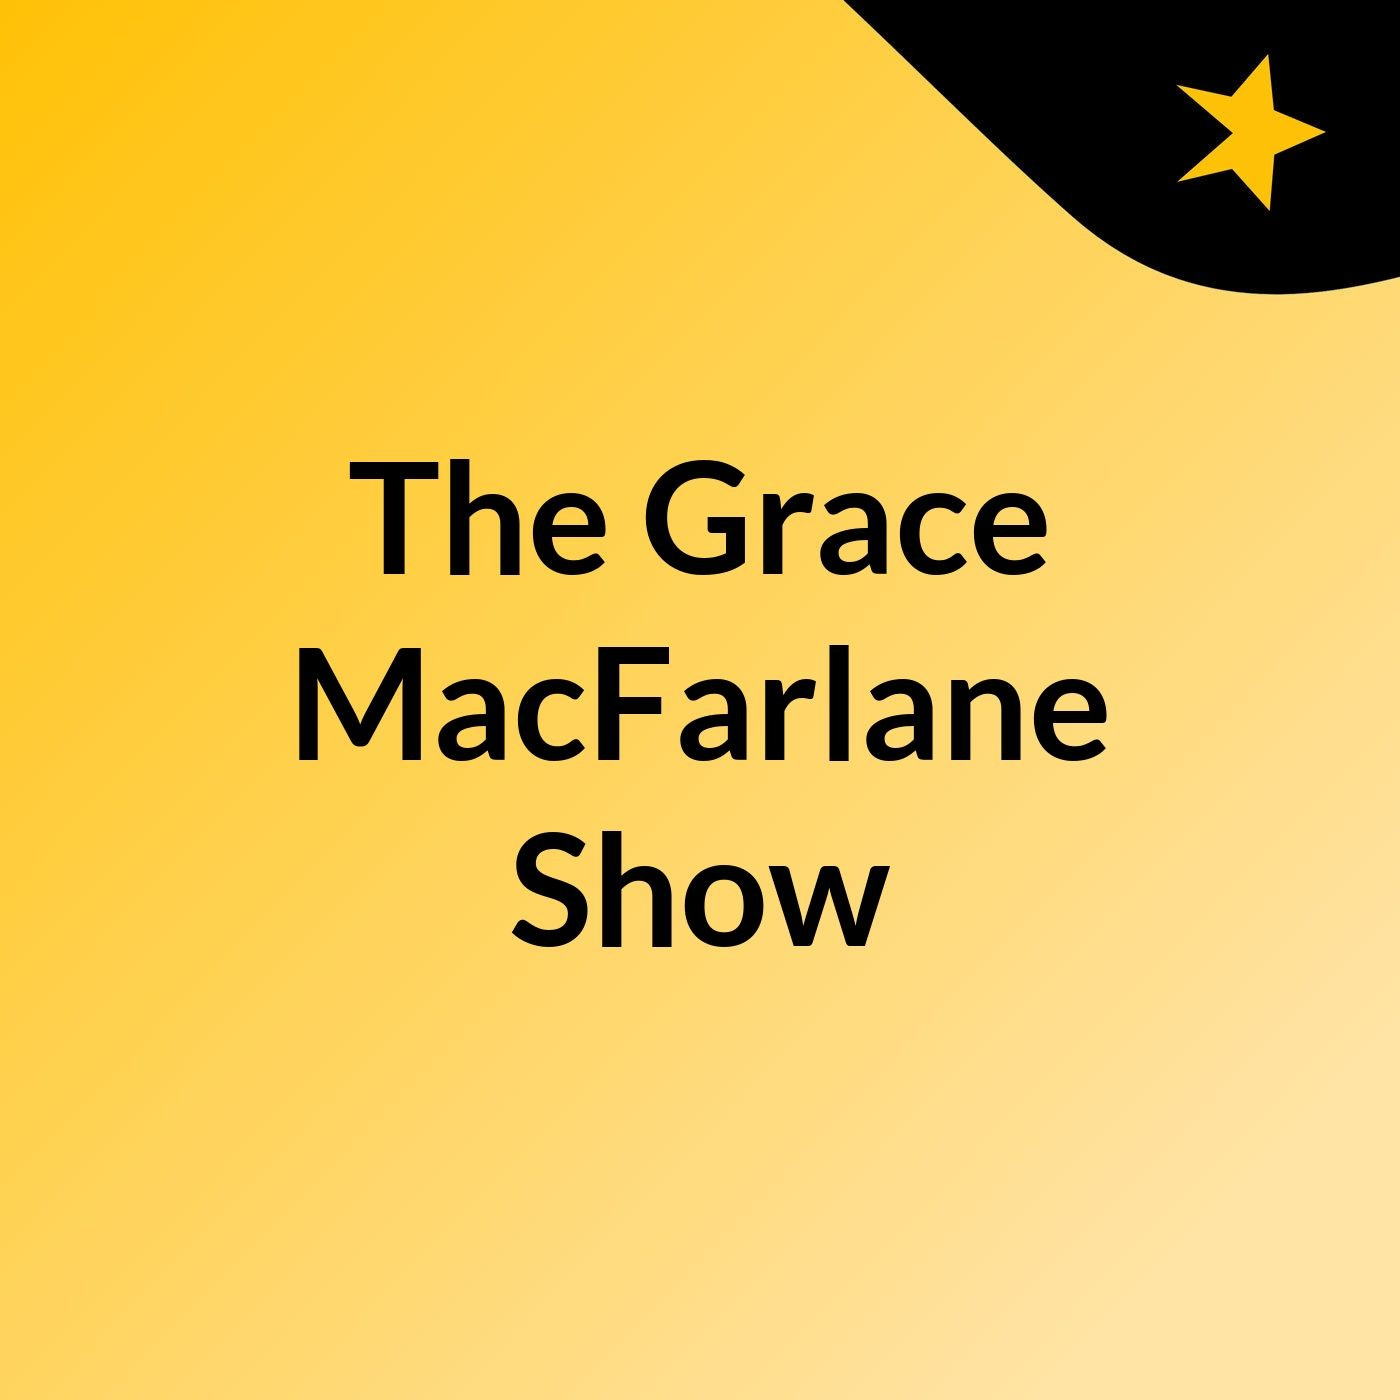 The Grace MacFarlane Show on Jamit